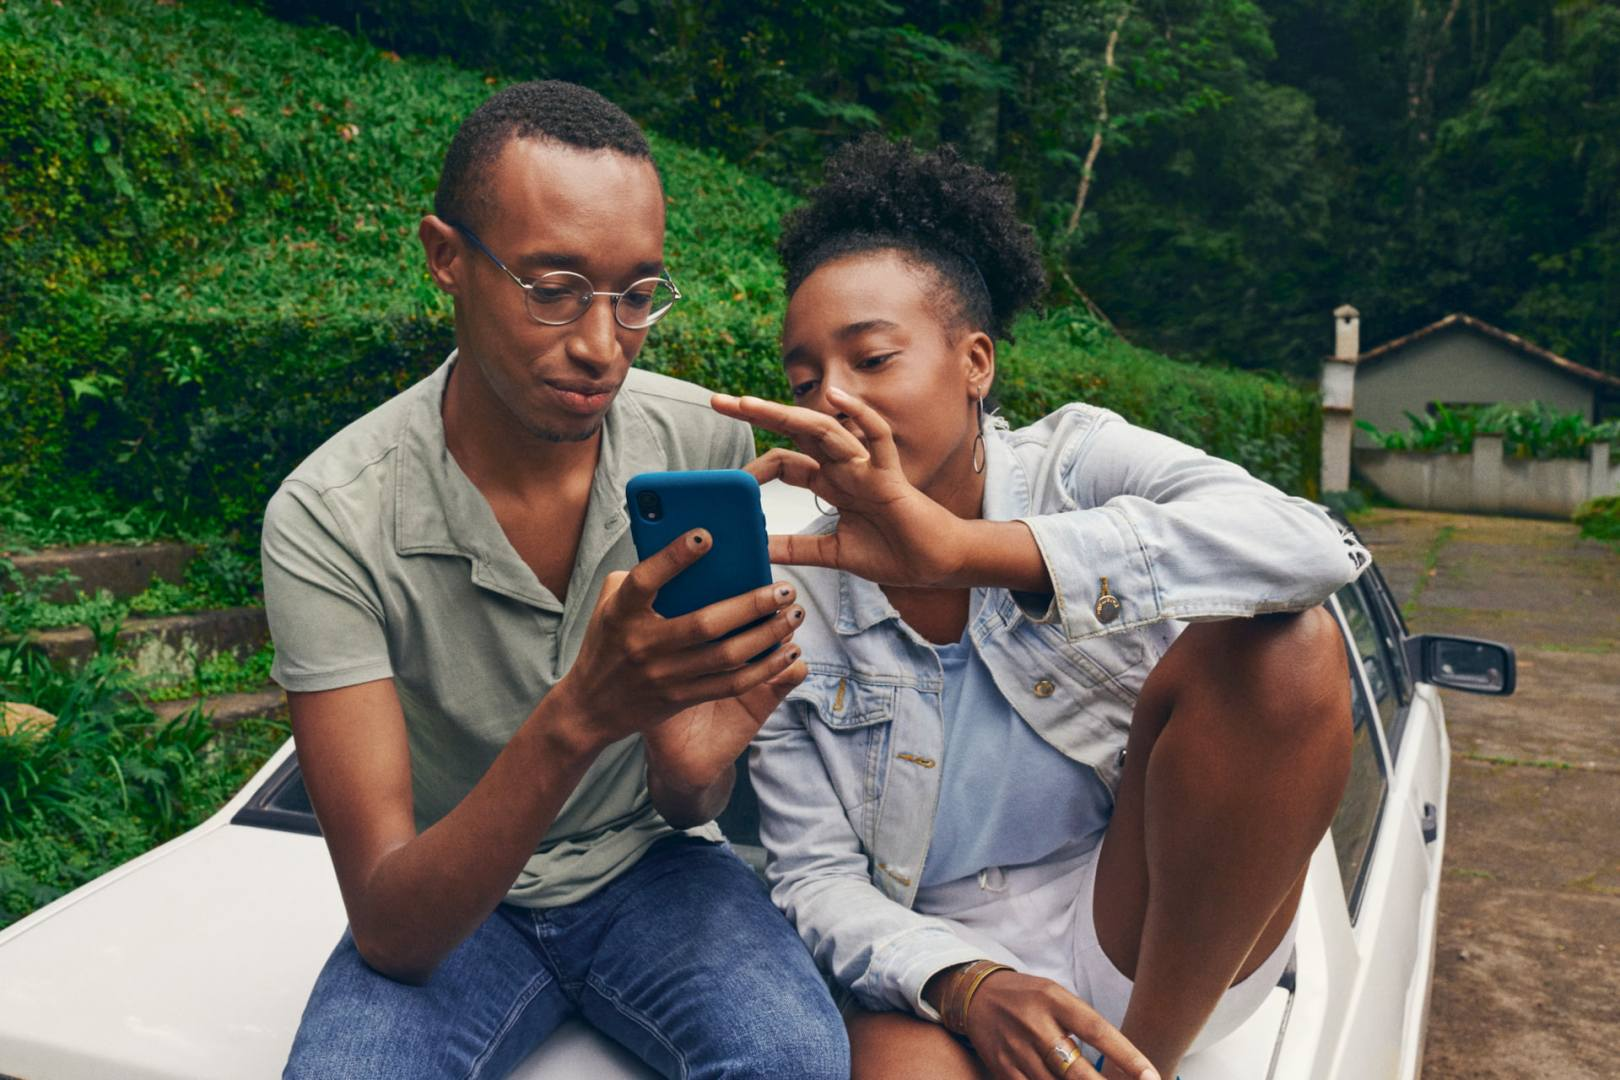 Image of two people resting on a car while looking at a phone screen together.